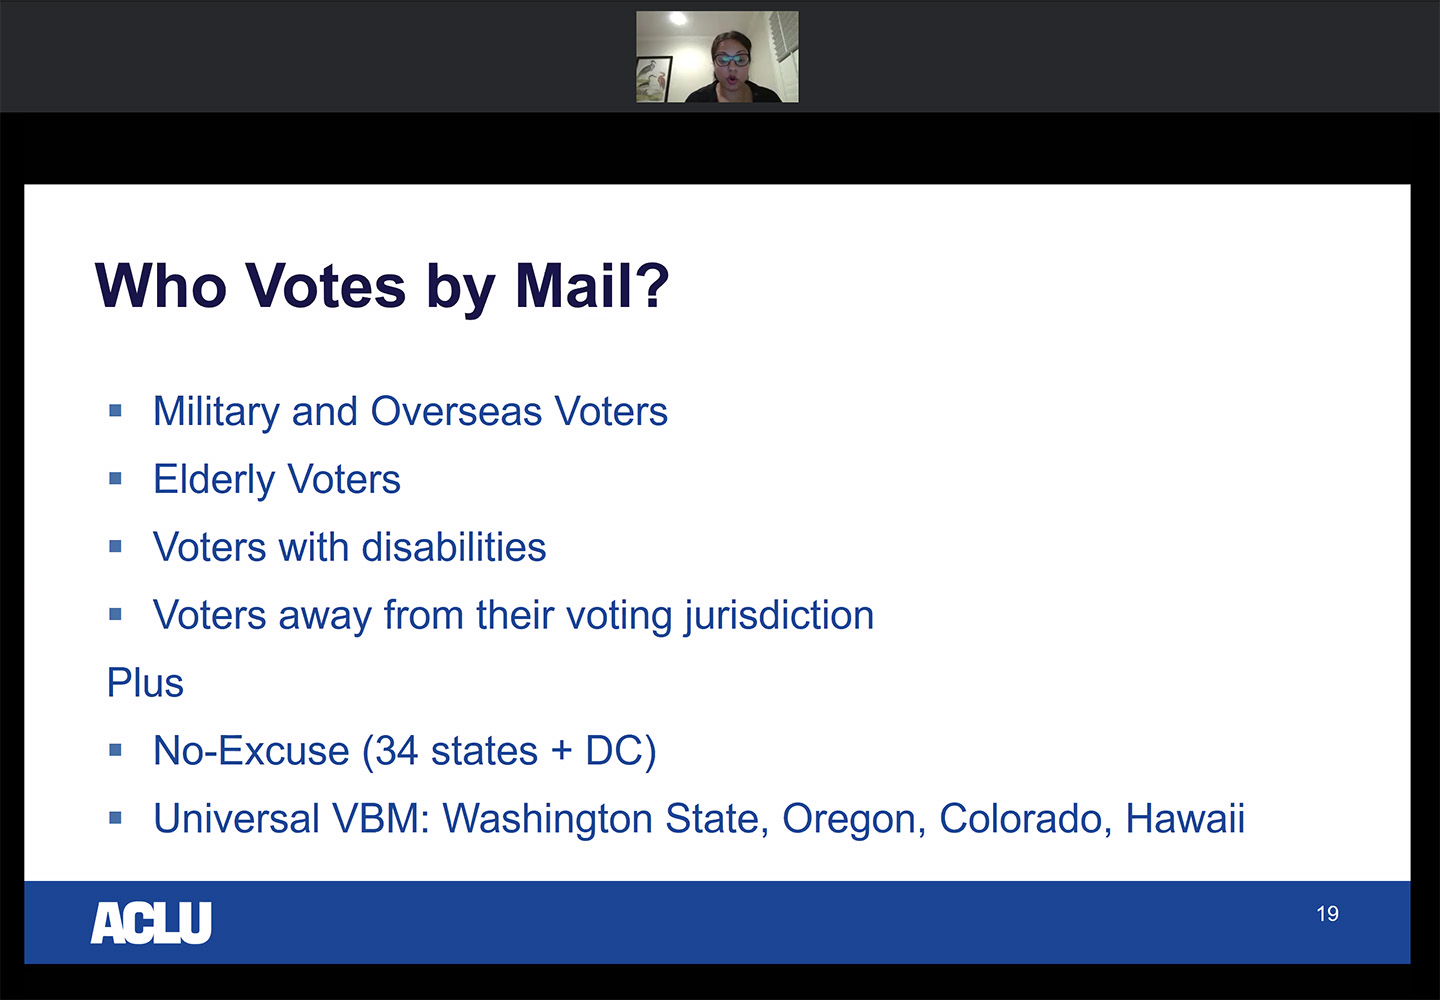 Who Votes By Mail? screenshot with Sonia Gill